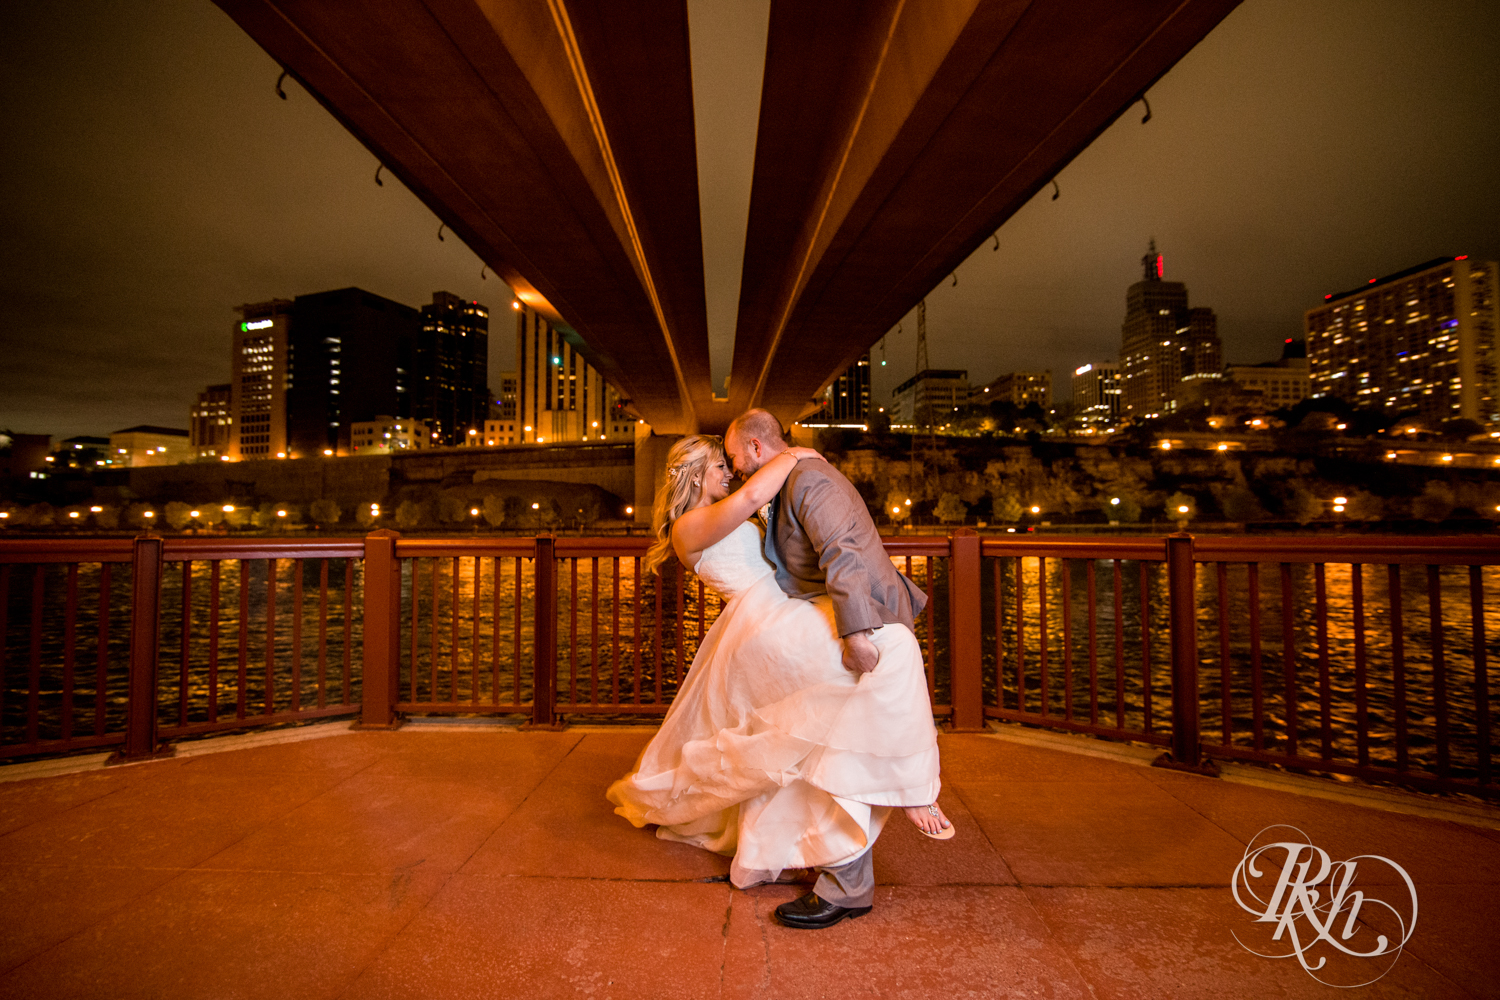 Shannon and Brian - Minnesota Wedding Photography - Raspberry Island - Minnesota Boat Club - RKH Images - Blog  (60 of 60).jpg